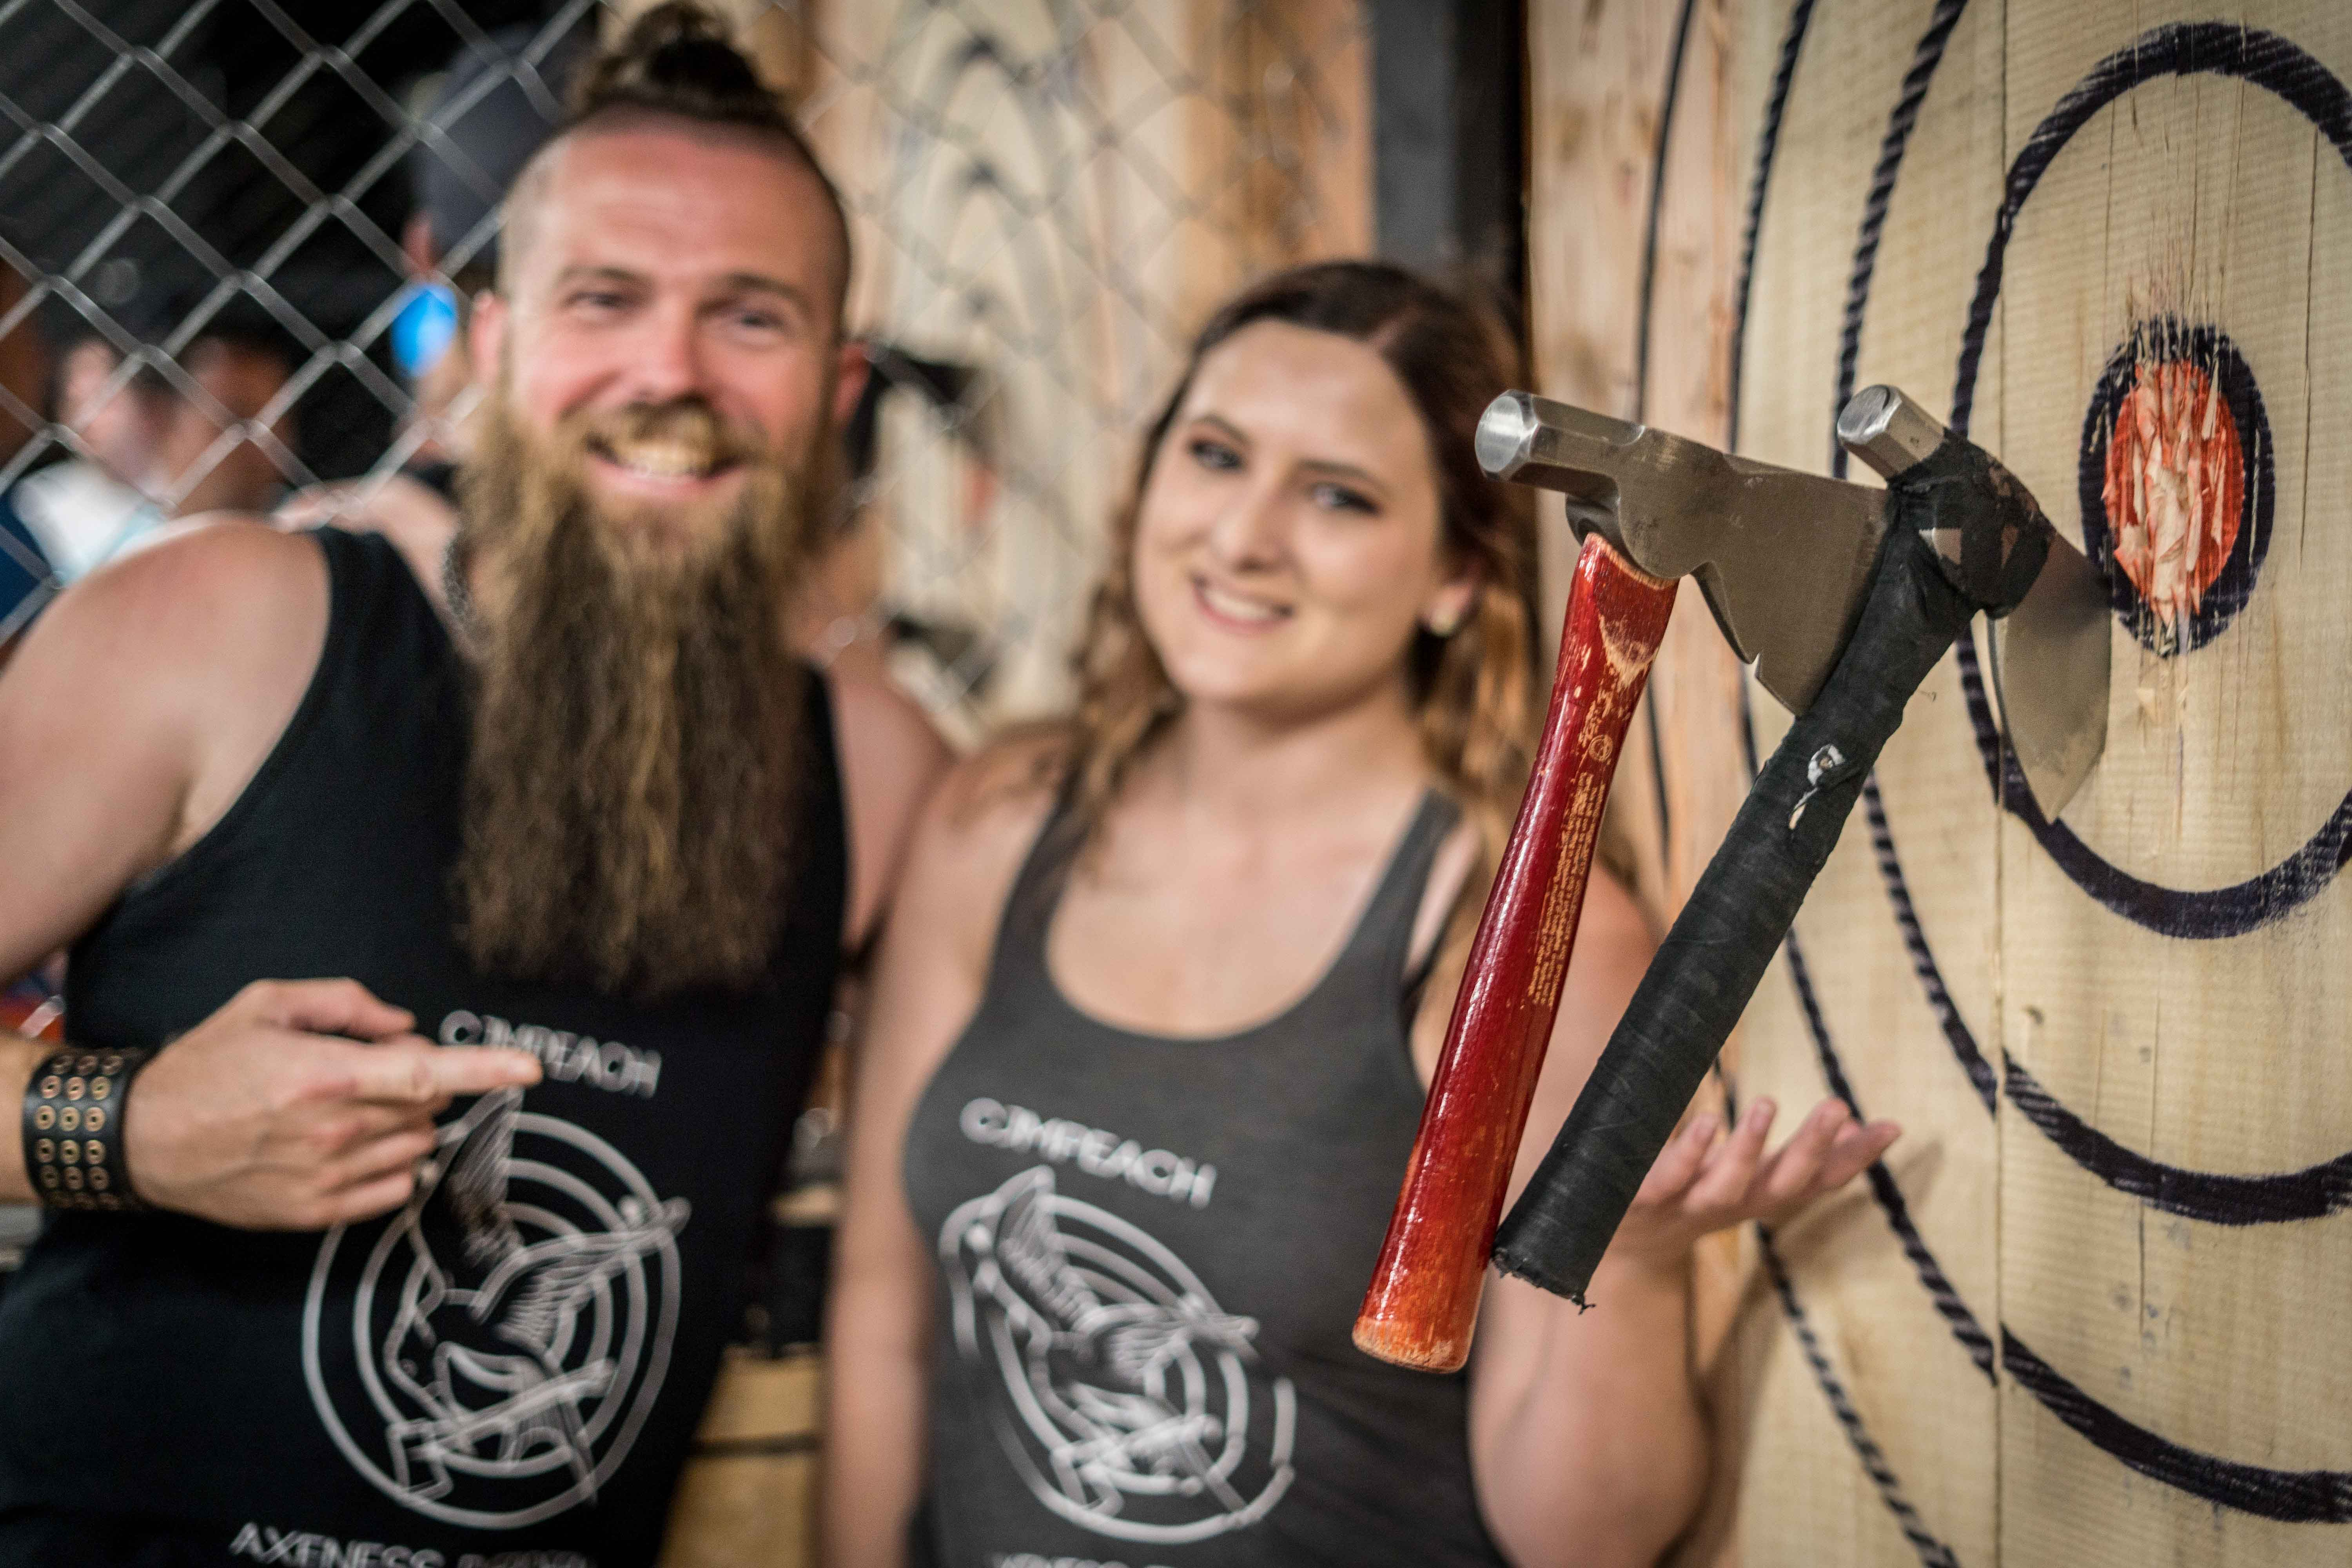 How To Get Better At Axe Throwing